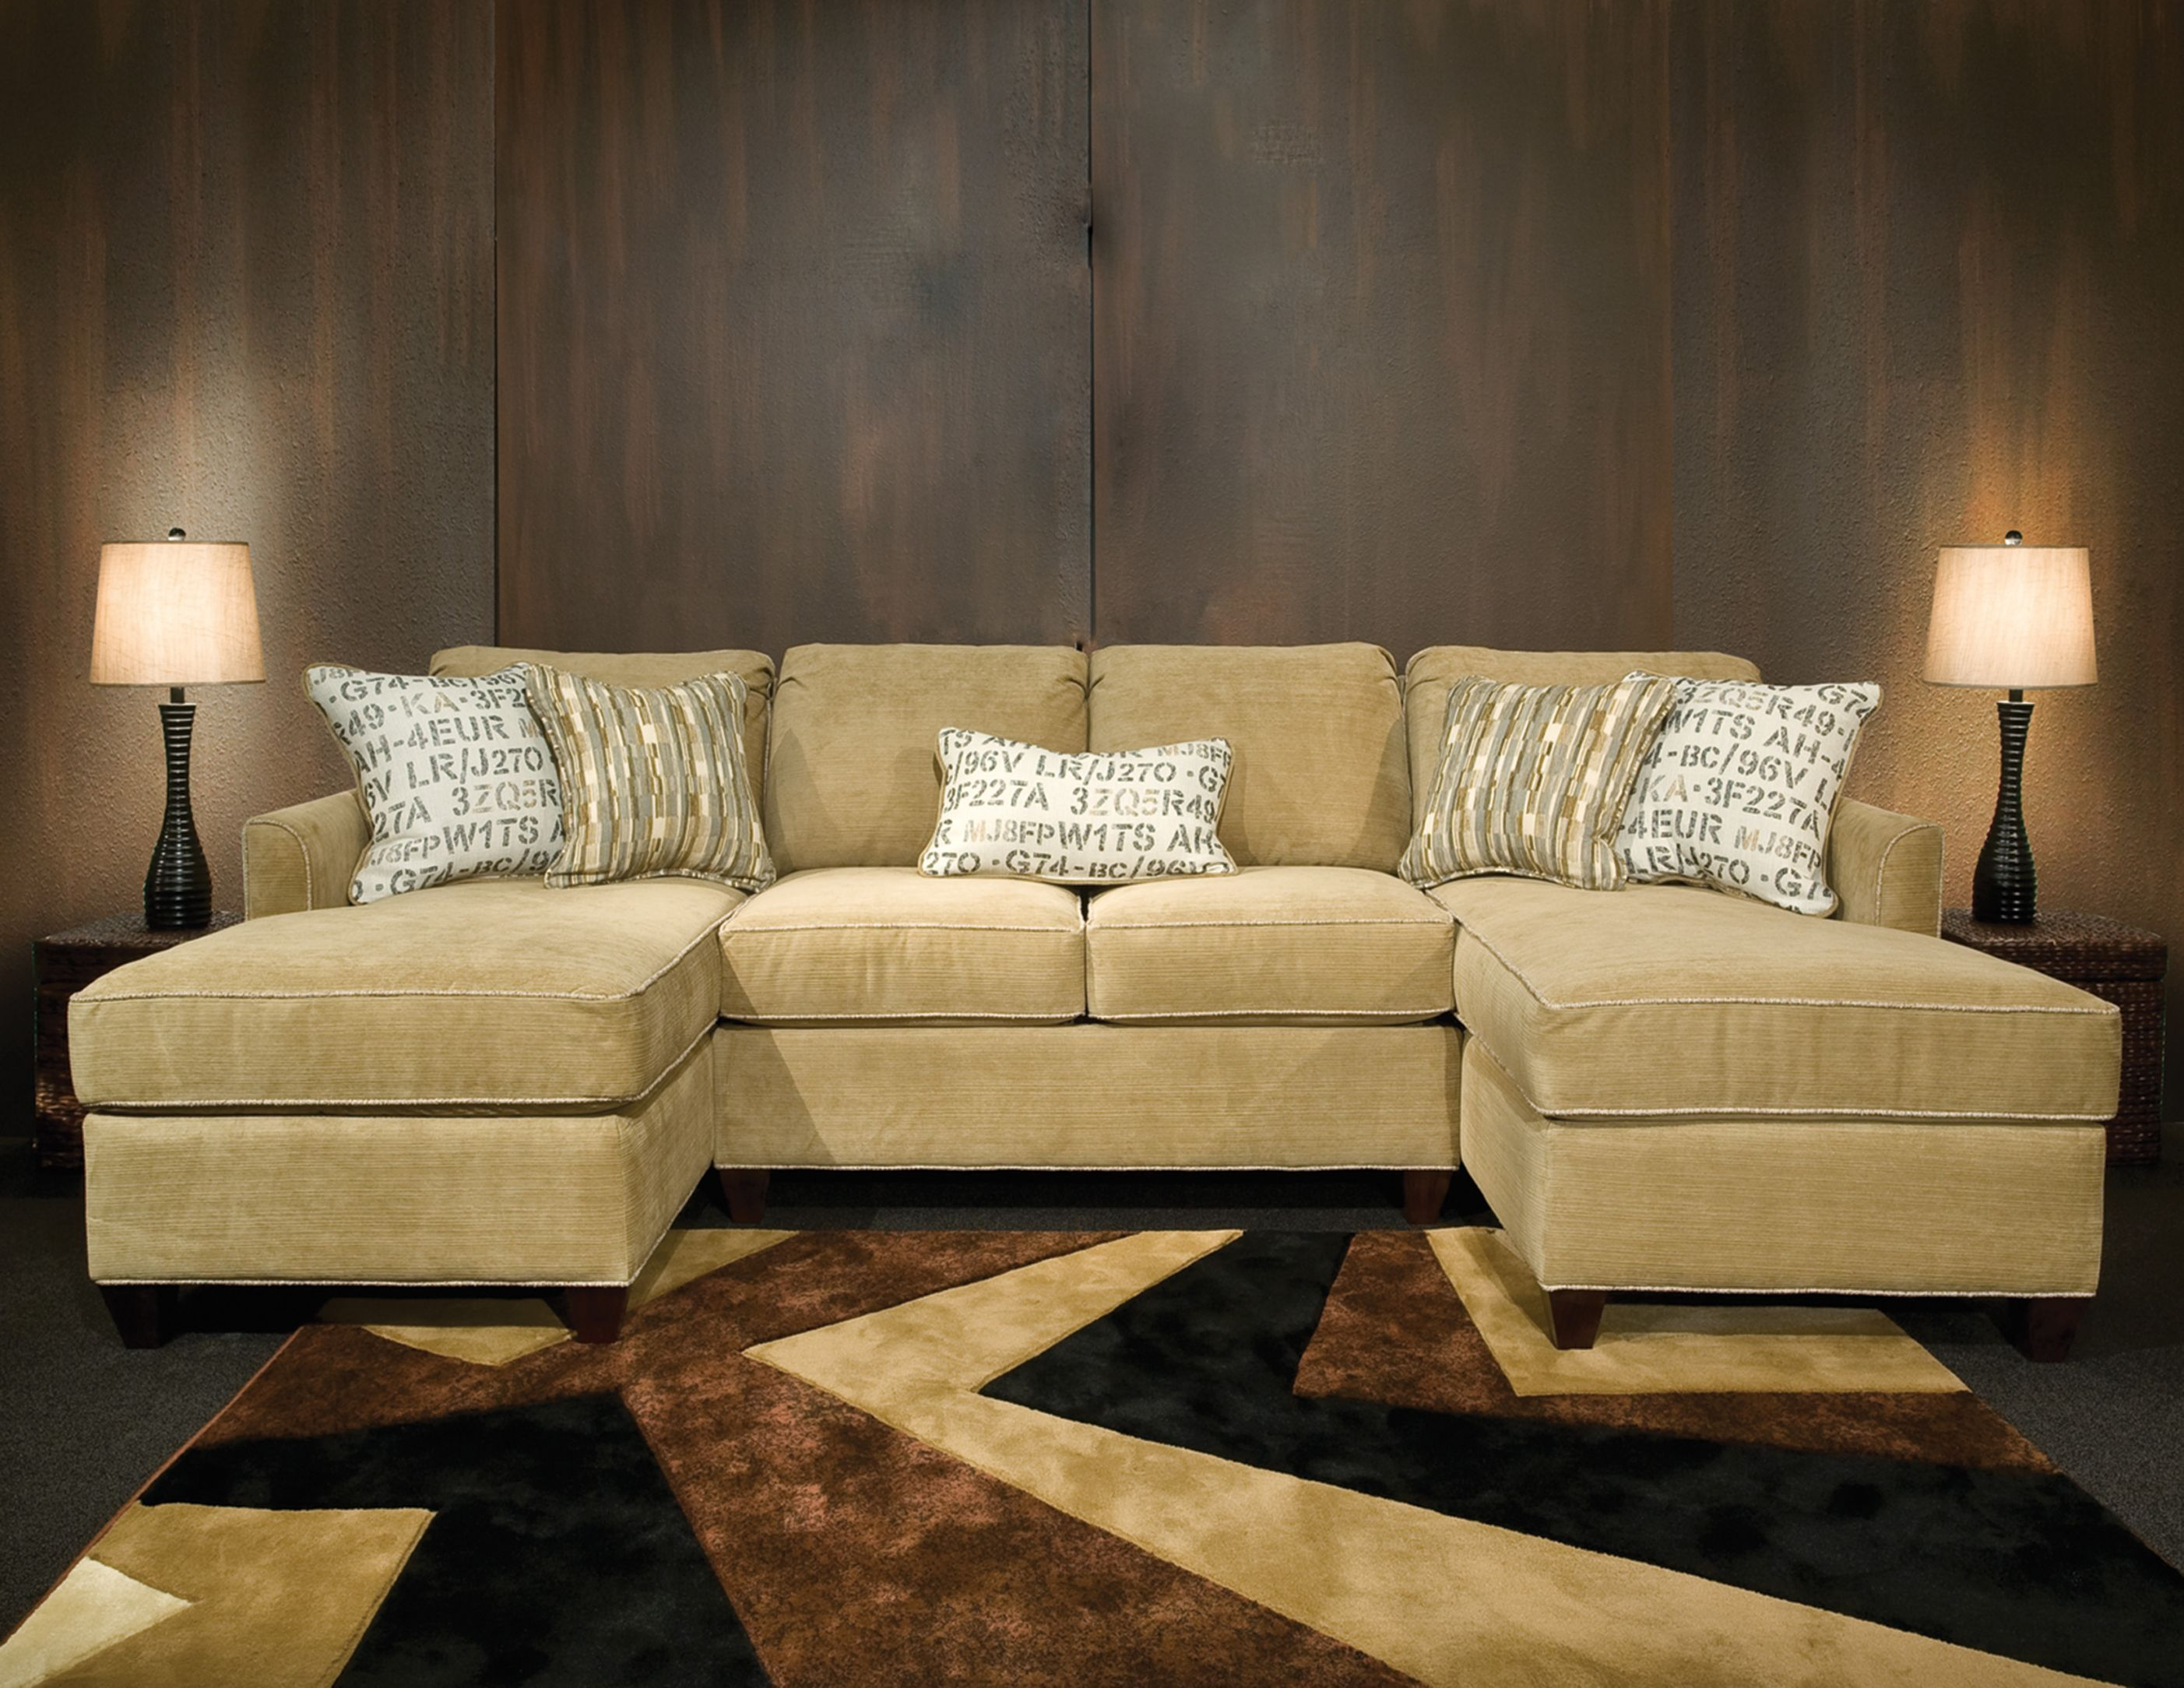 Amusing Double Chaise Sectional Sofa 22 On Black Fabric Sectional Sofas with Double Chaise Sectional Sofa : double chaise sofa sectional - Sectionals, Sofas & Couches